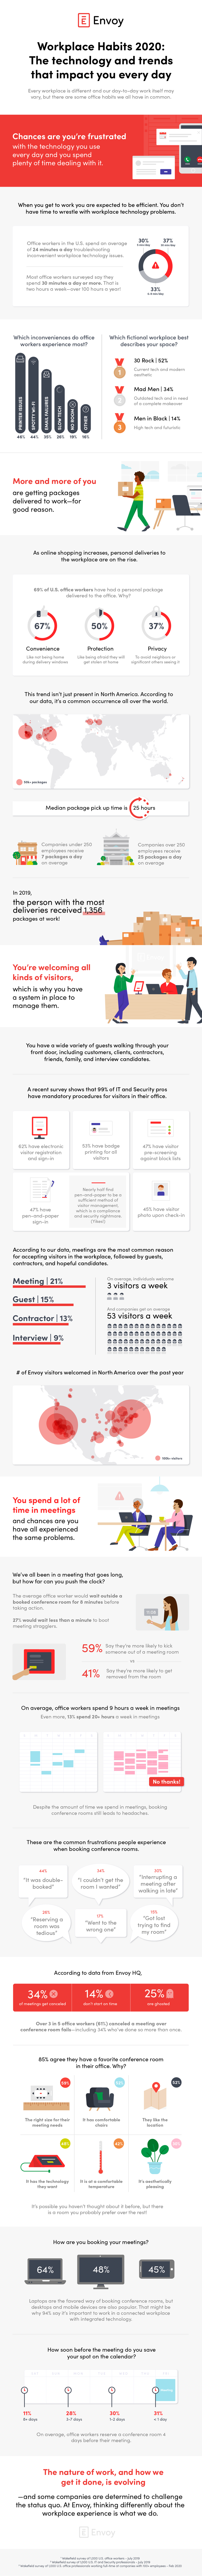 workplace habits 2020 infographic